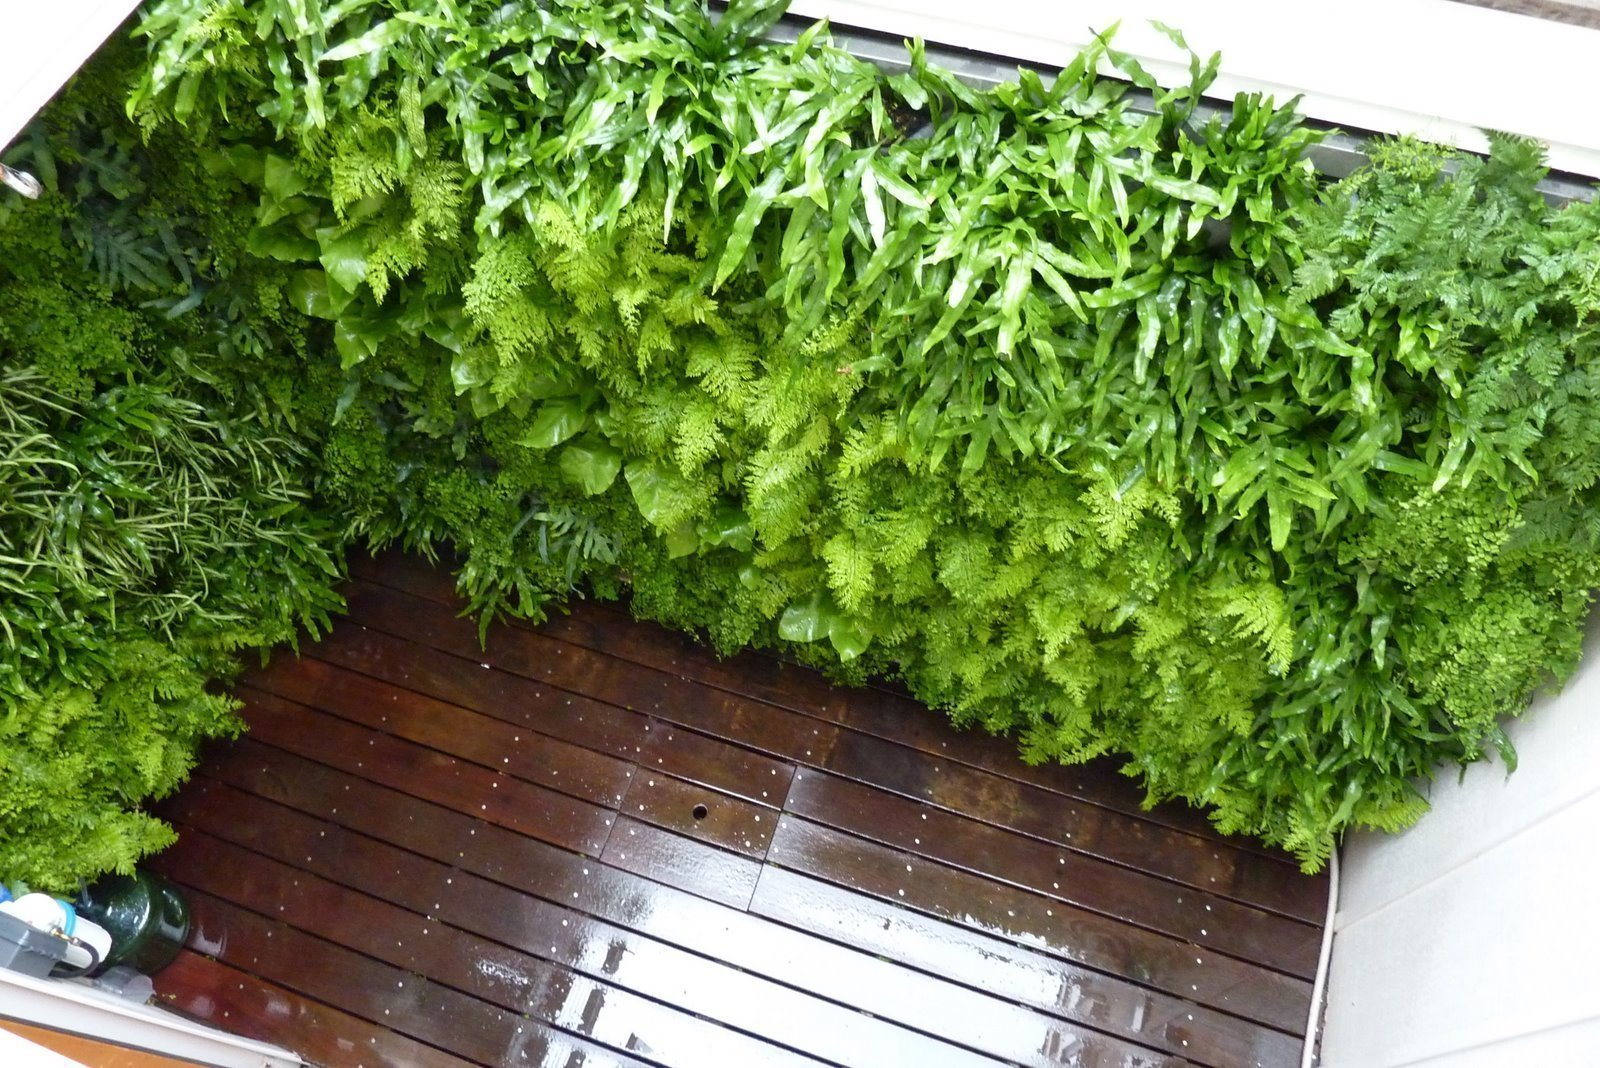 Chris Bribach, Plants On Walls. Fern Well. Florafelt Vertical Garden Planters.